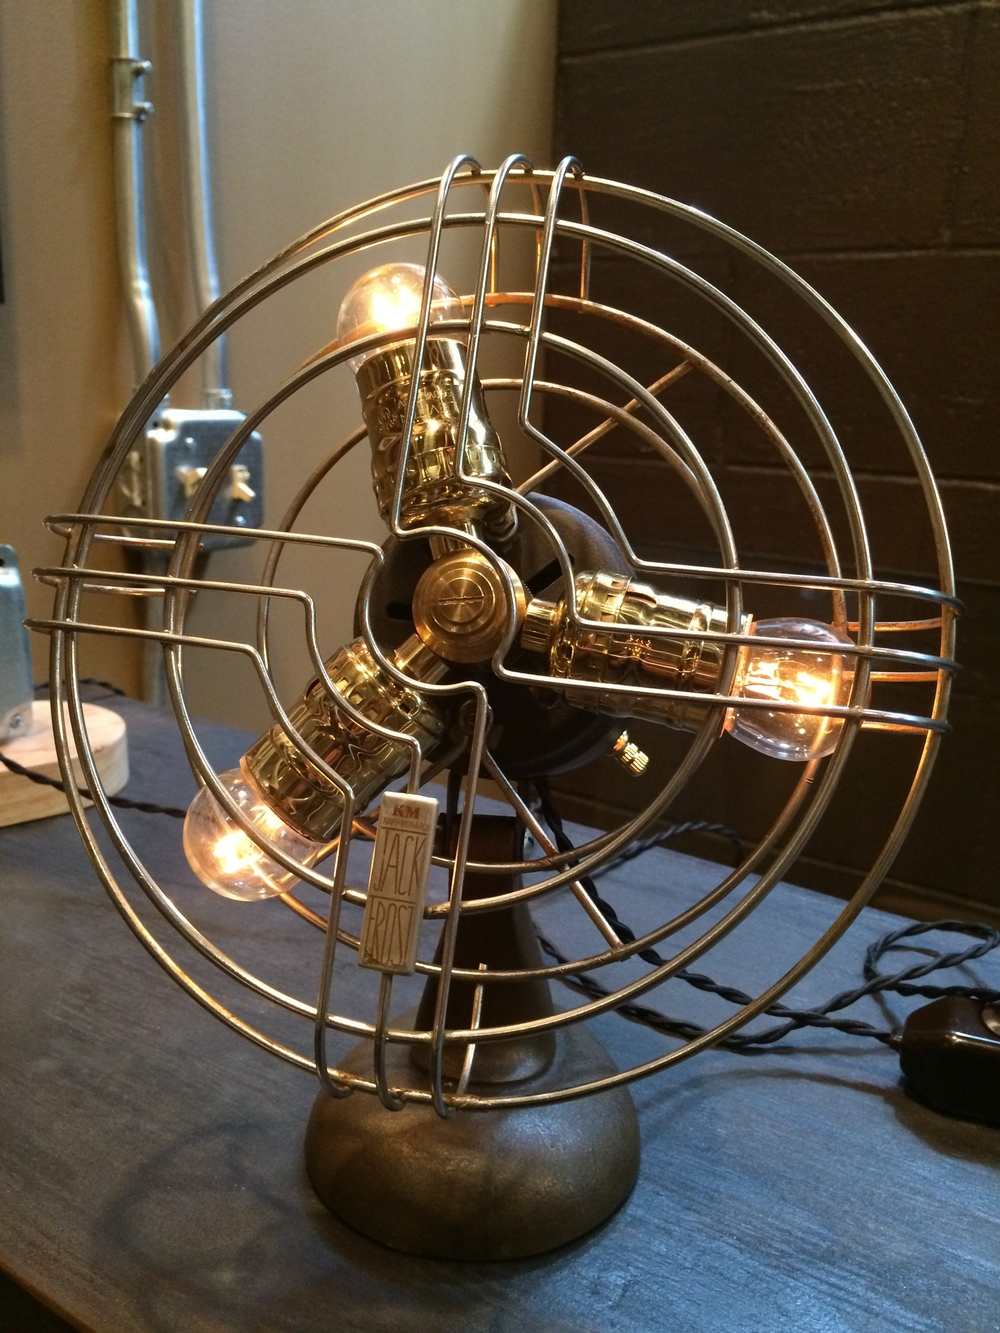 1950's Knap Monarch Vintage Fan Lamp - $120 SOLD